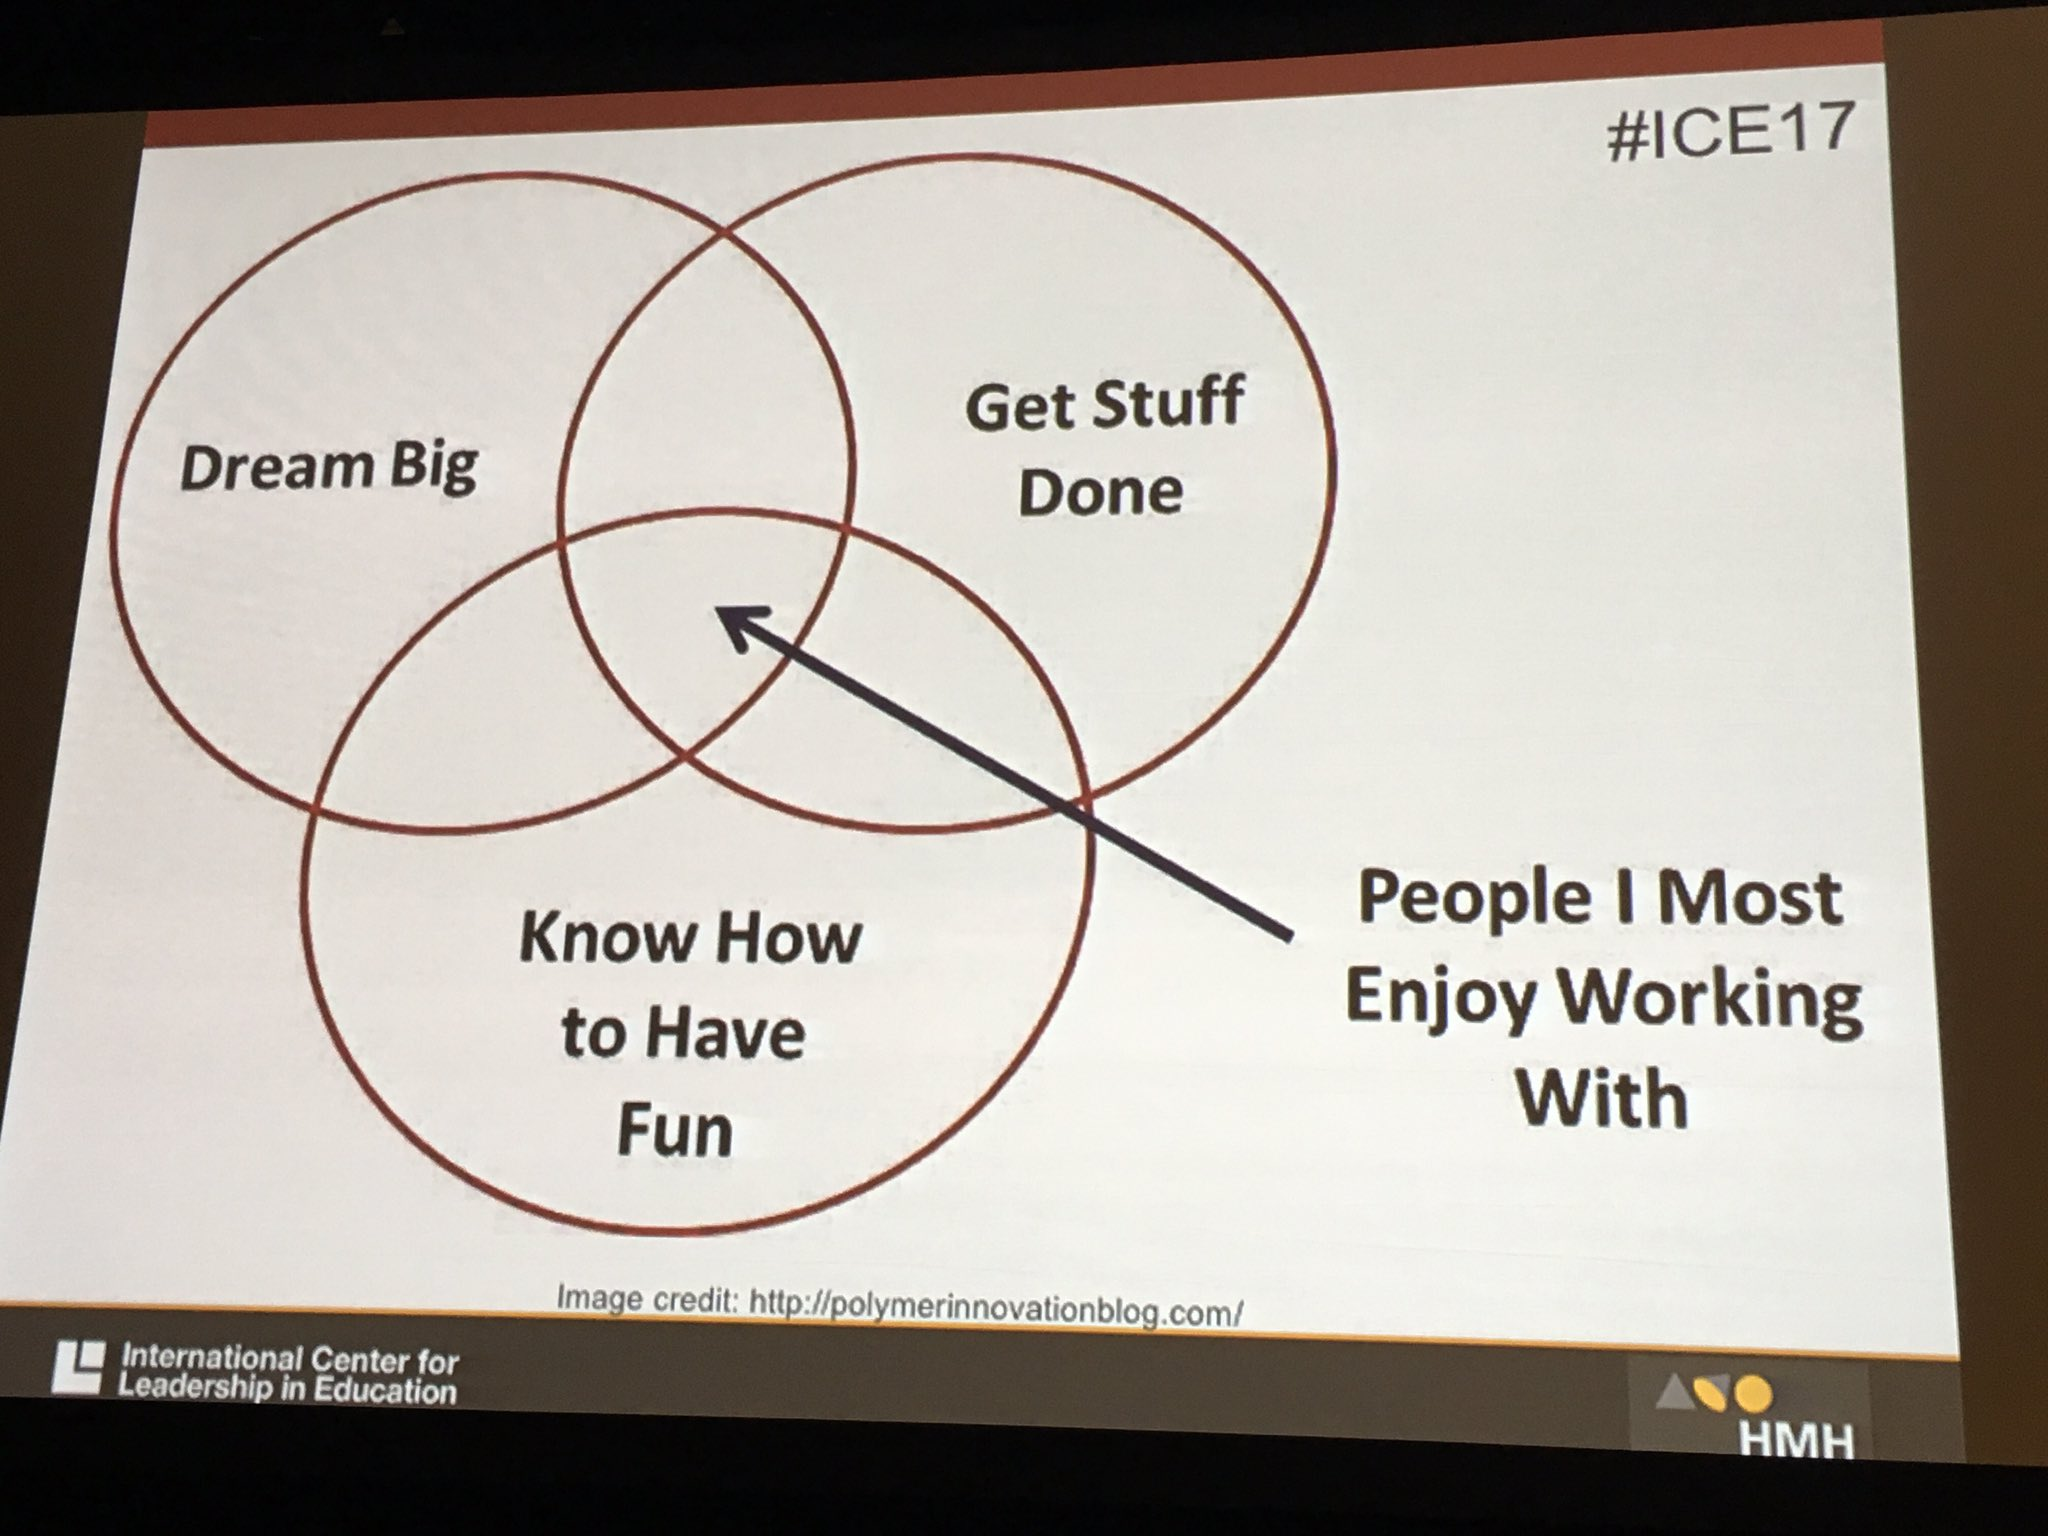 So true! #ICE17 https://t.co/u6Y1xcNnu0